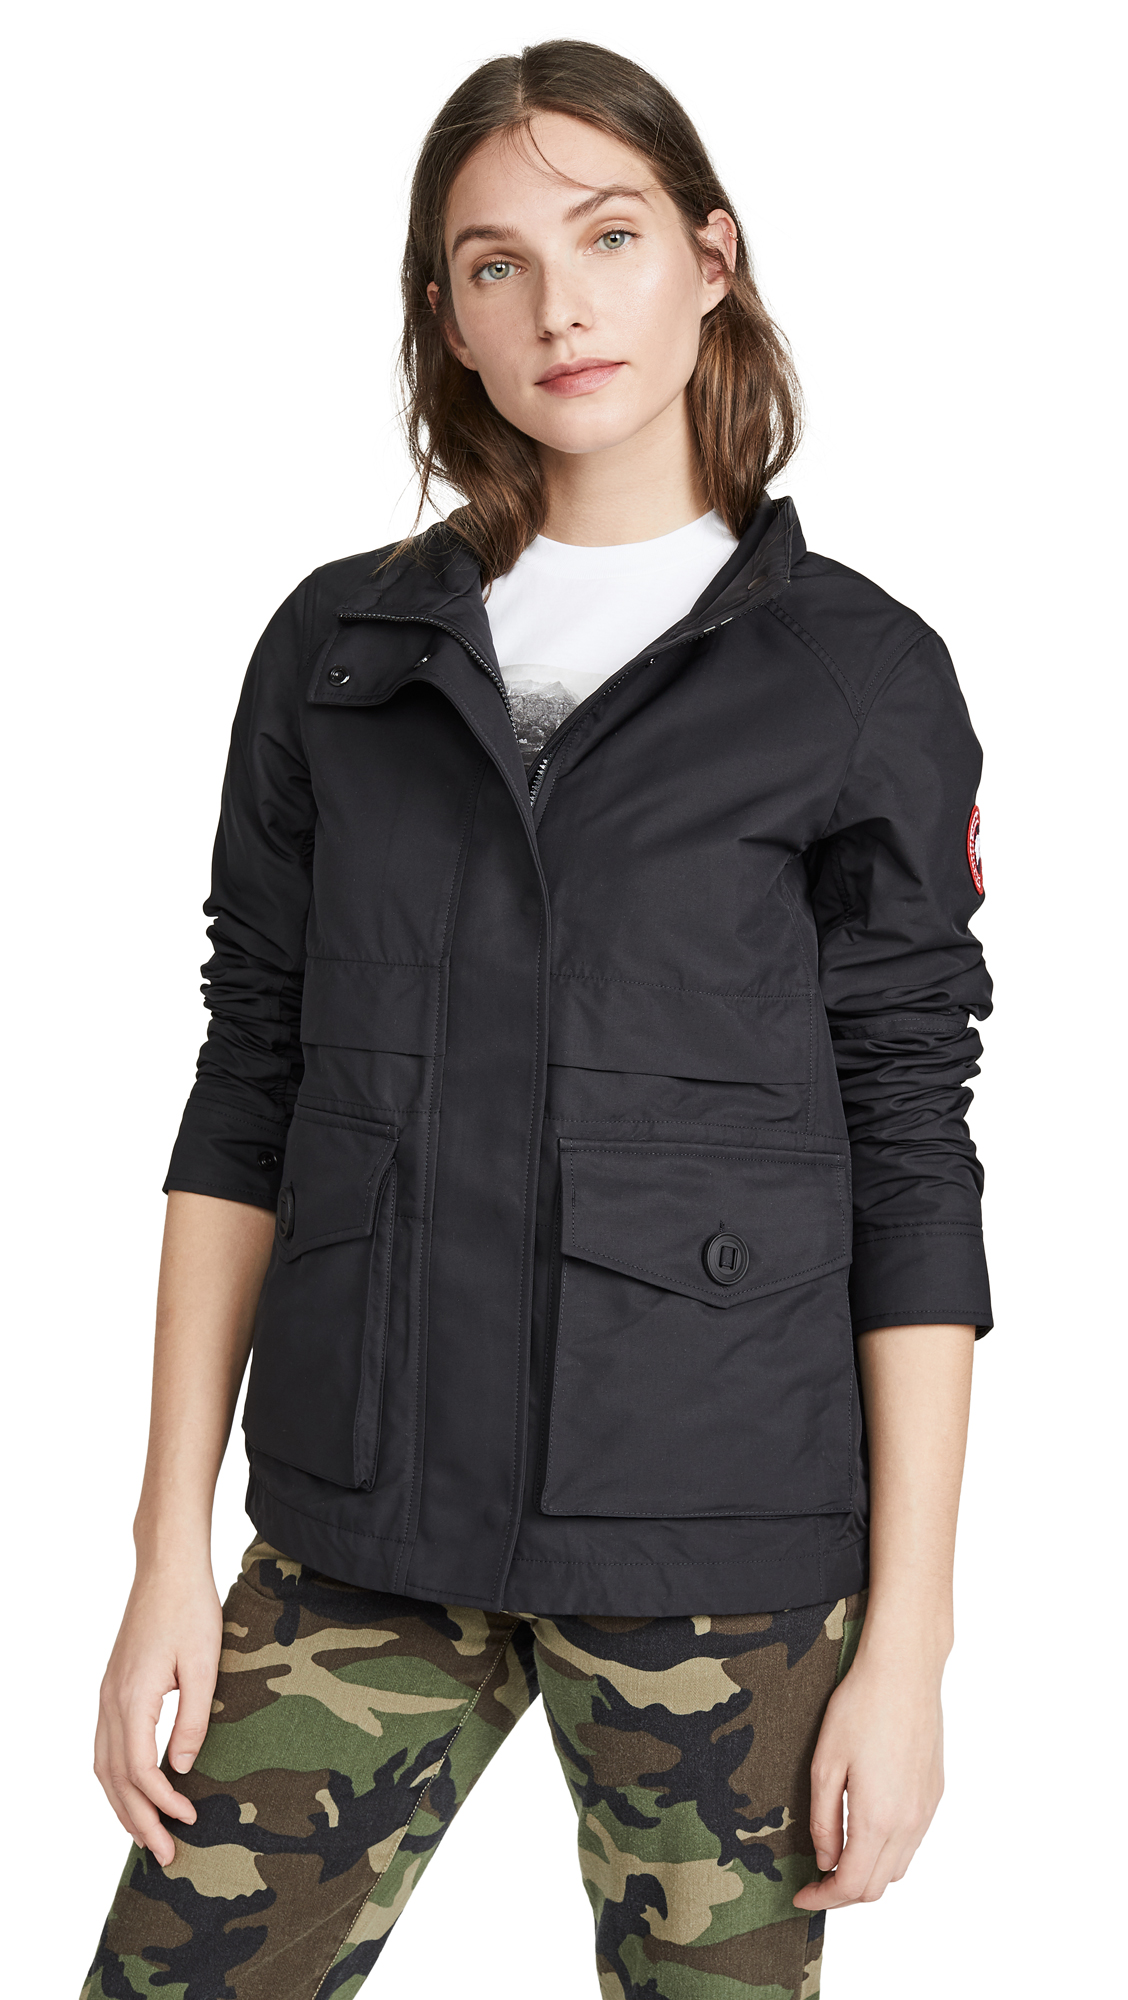 Buy Canada Goose Elmira Bomber Jacket online beautiful Canada Goose Jackets, Coats, Down Jackets